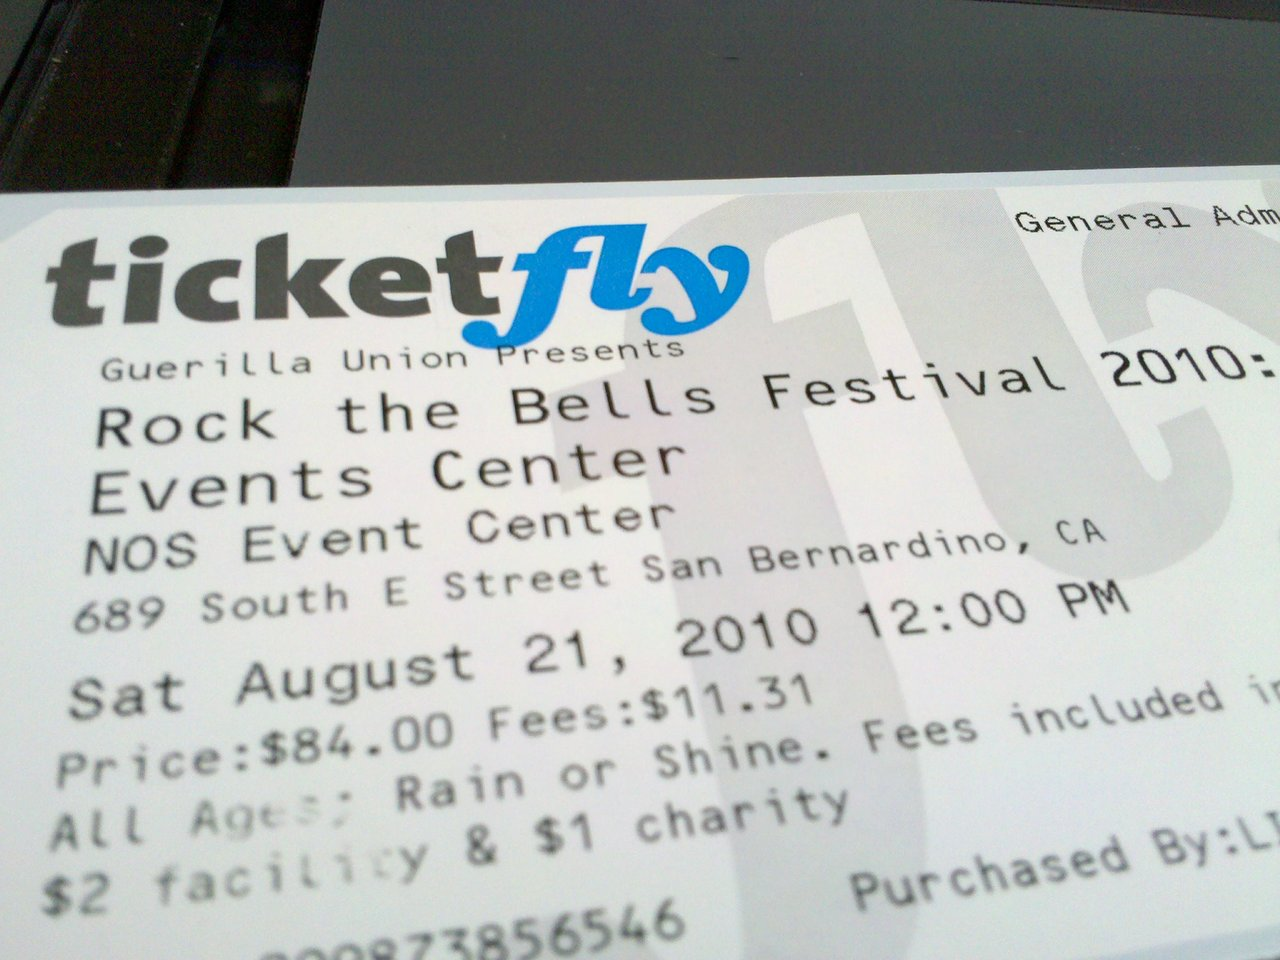 … so does anyone want to buy a rock the bells ticket? something better came up so I'm selling cheap. inquire within! CLAIMED!